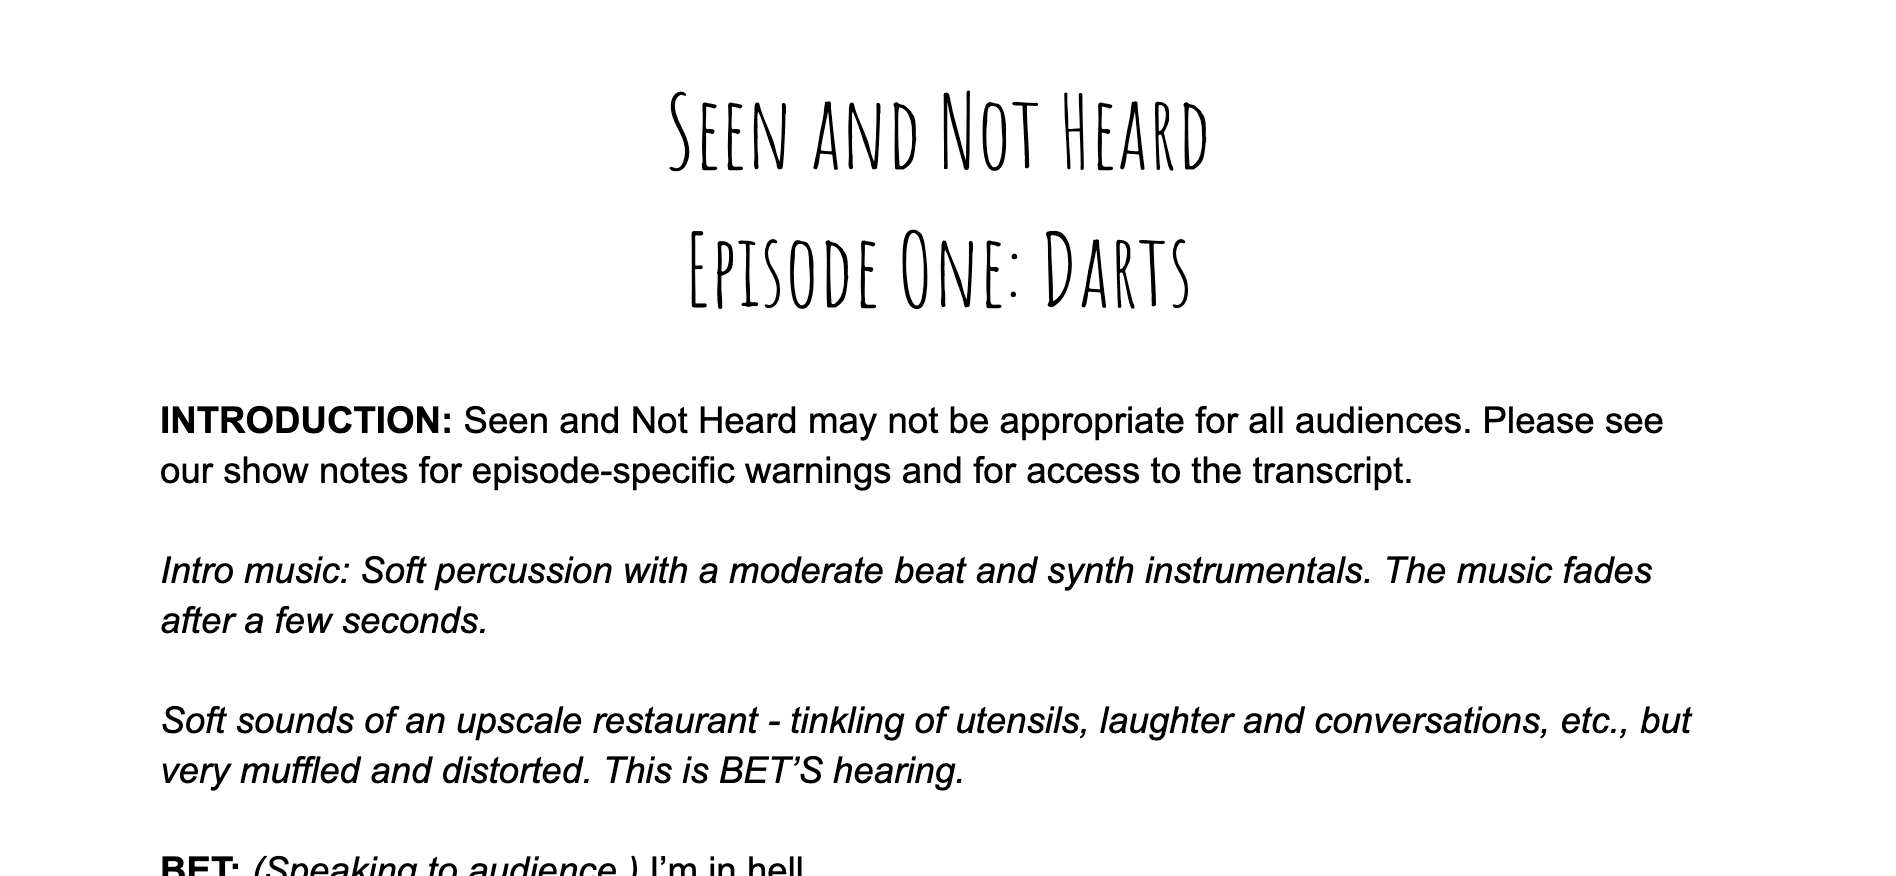 A screenshot from the transcript of the first episode of the podcast Seen And Not Heard. In part, it reads: Intro Music: Soft percussion with a moderate beat and synth instrumentals. The music fades away after a few seconds. Soft sounds of an upscale restaurant - tinkling of utensils, laughter, conversations etc. This is BET's hearing.